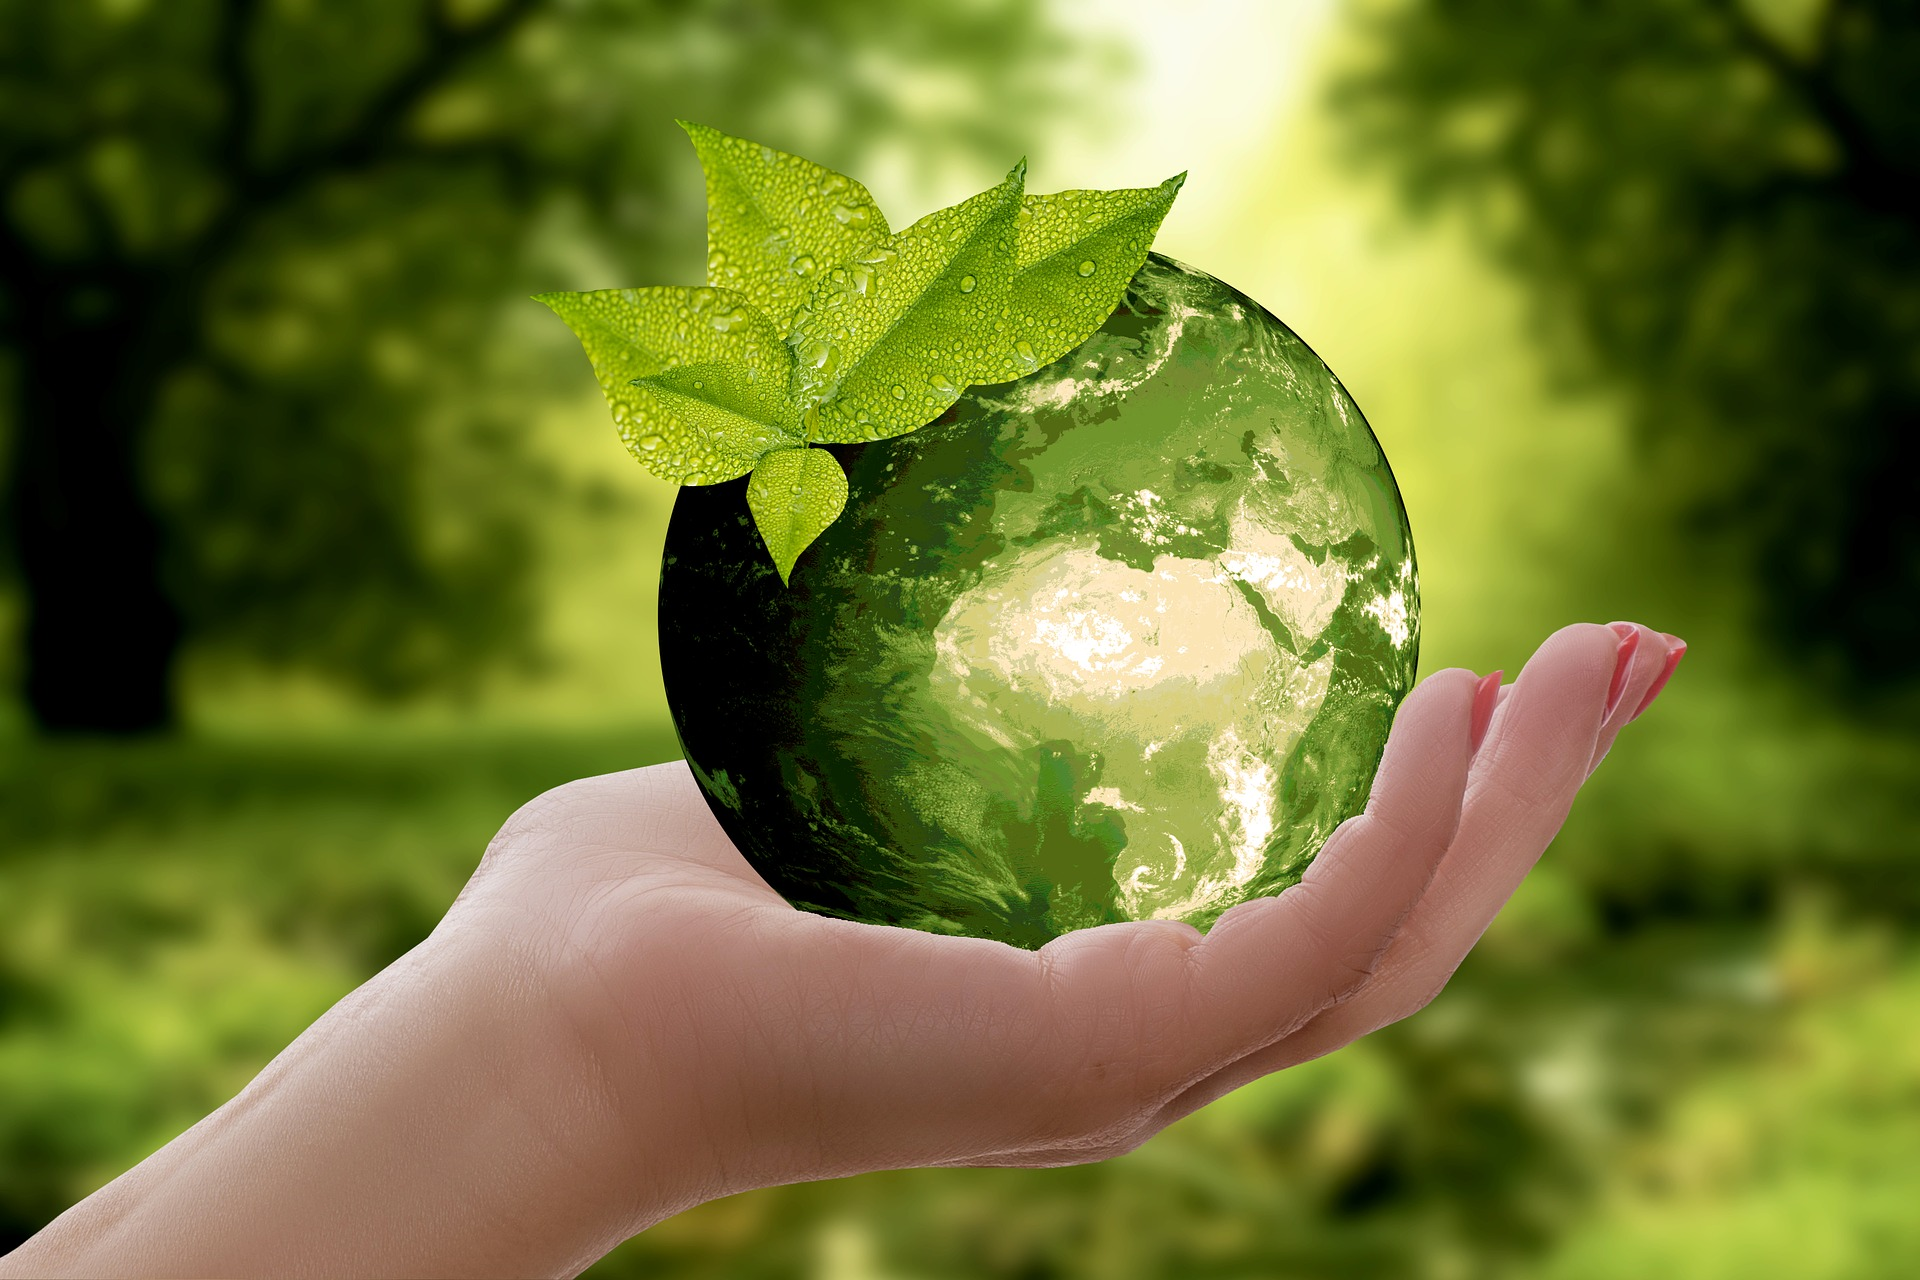 green earth ball in woman's hand